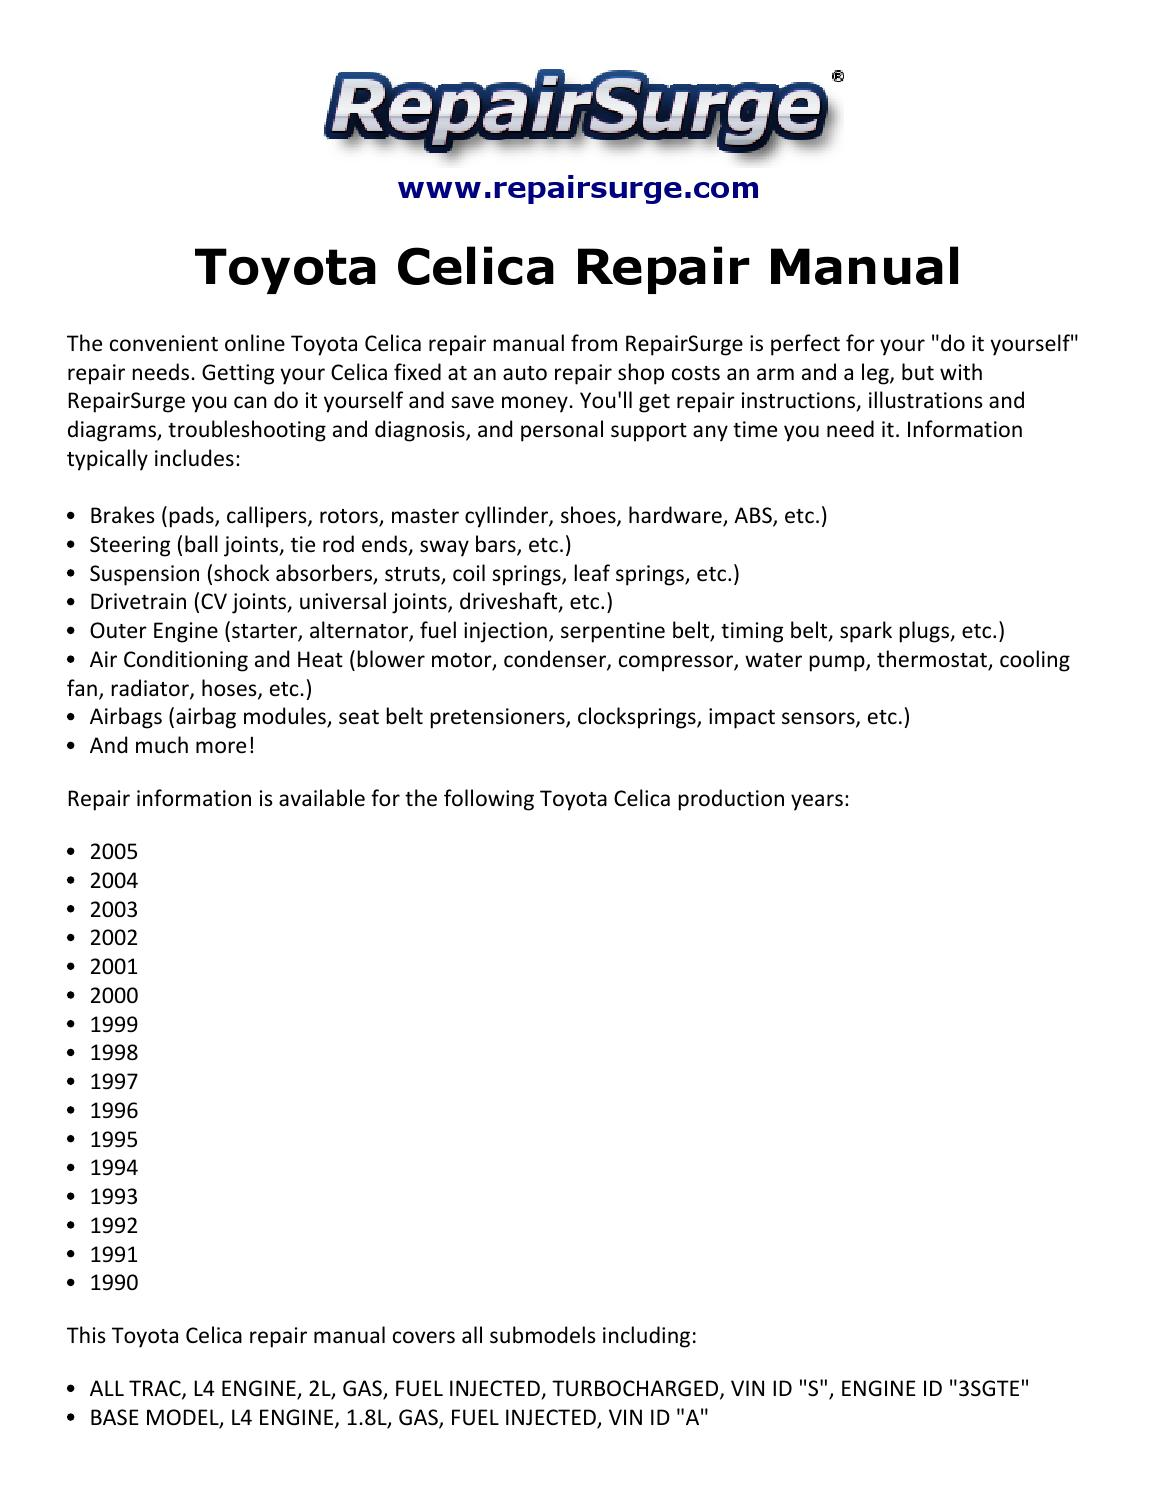 toyota celica engine diagram toyota celica repair manual 1990 2005 by ryan lung melville issuu 2003 toyota celica engine diagram toyota celica repair manual 1990 2005